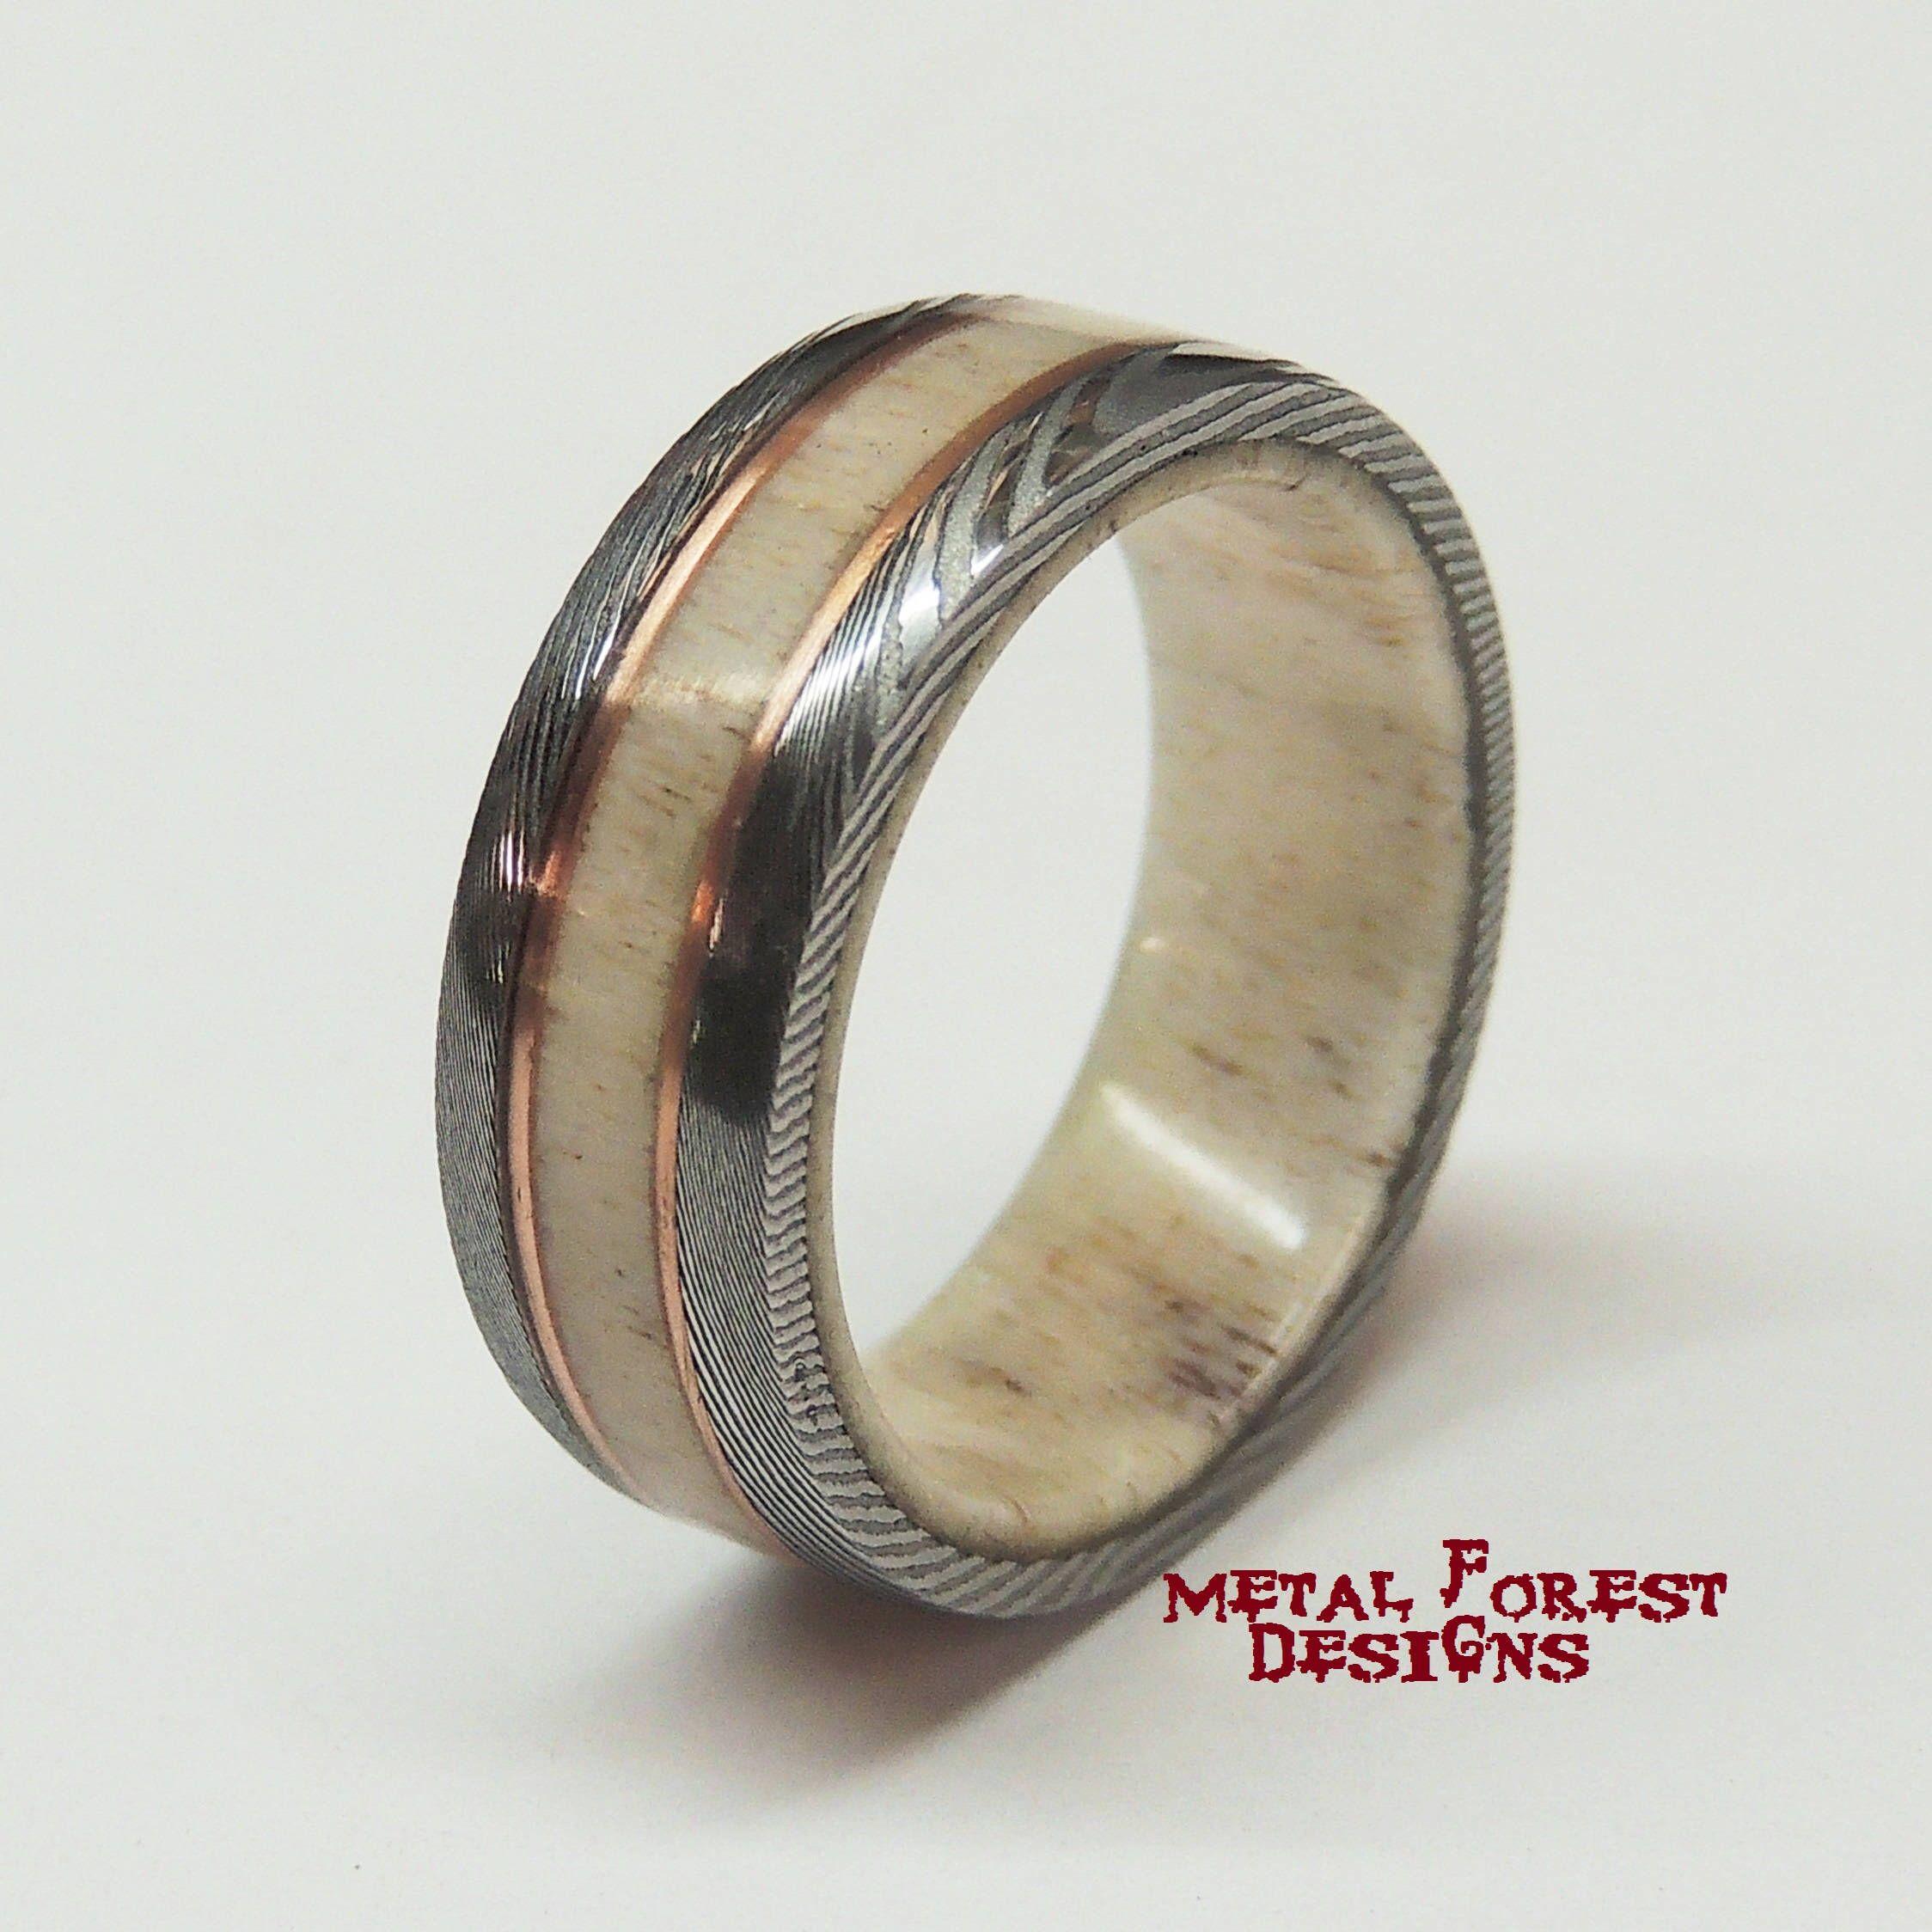 Stainless Damascus Steel Antler and Copper Ring, Sale Price Marked ...